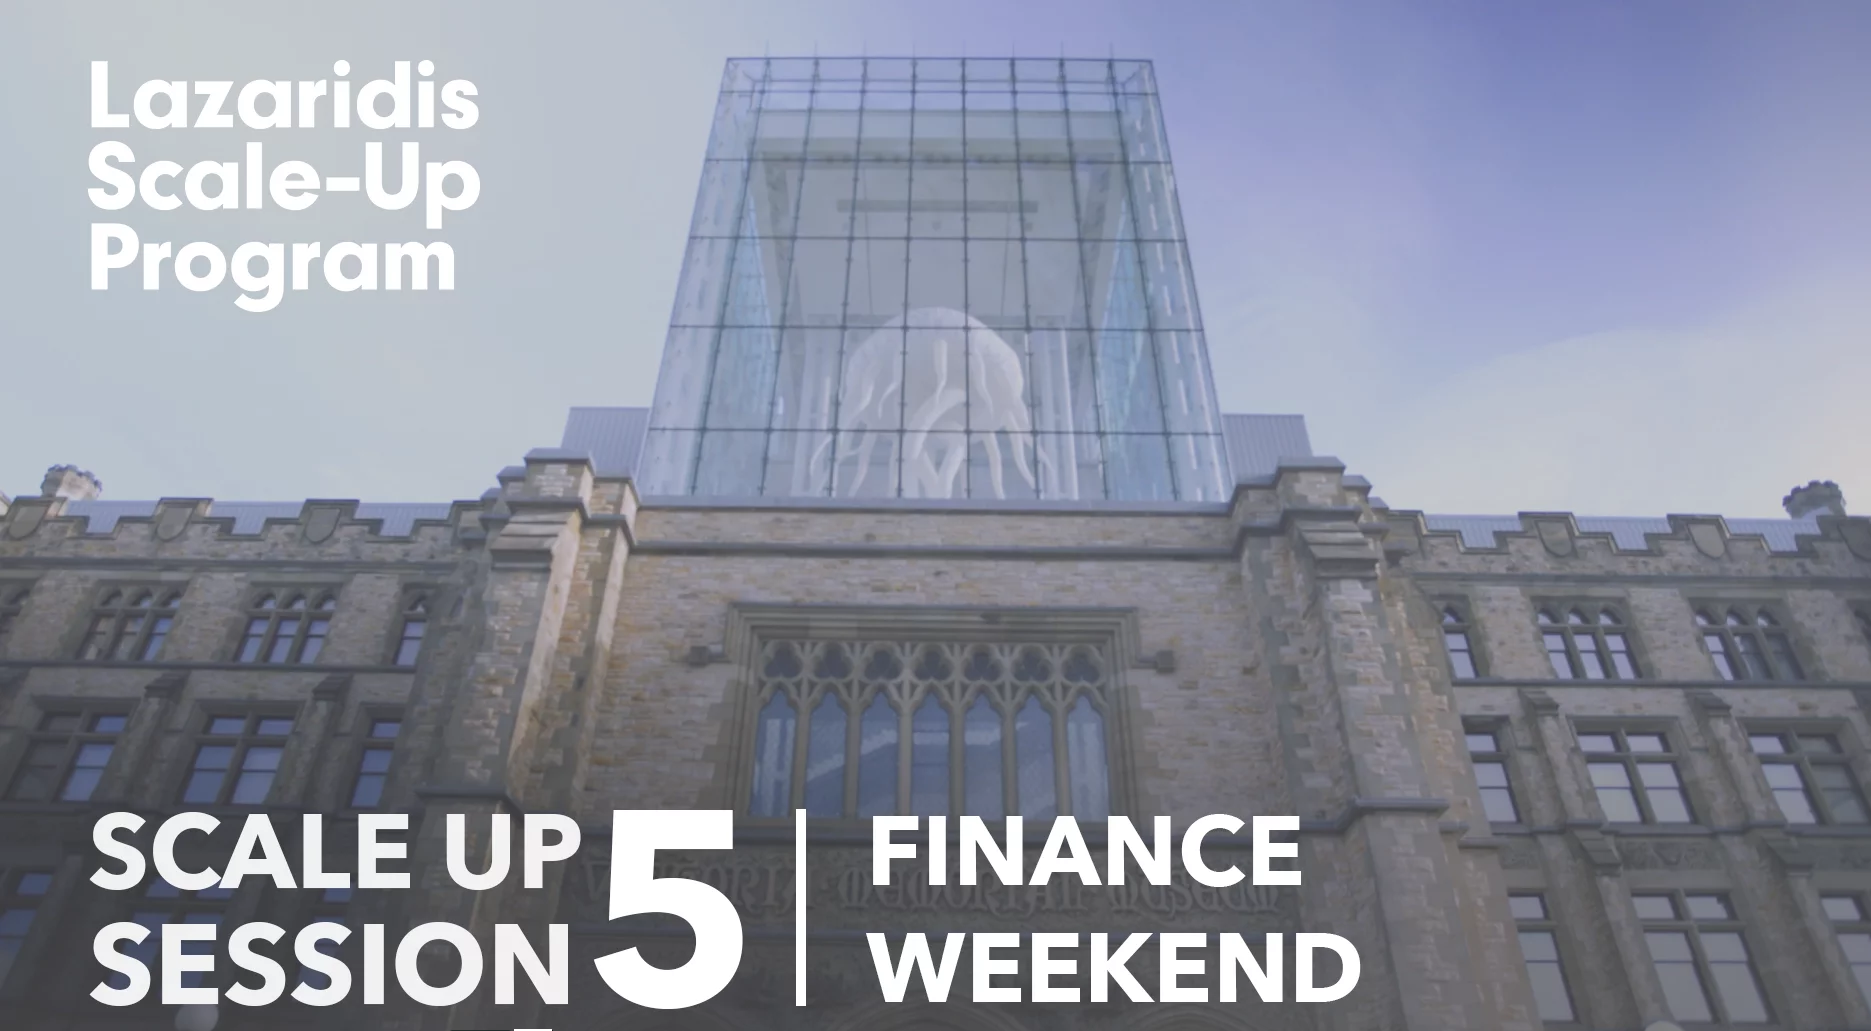 Highlights from the Lazaridis Scale-Up Program's Finance and Operations Weekend